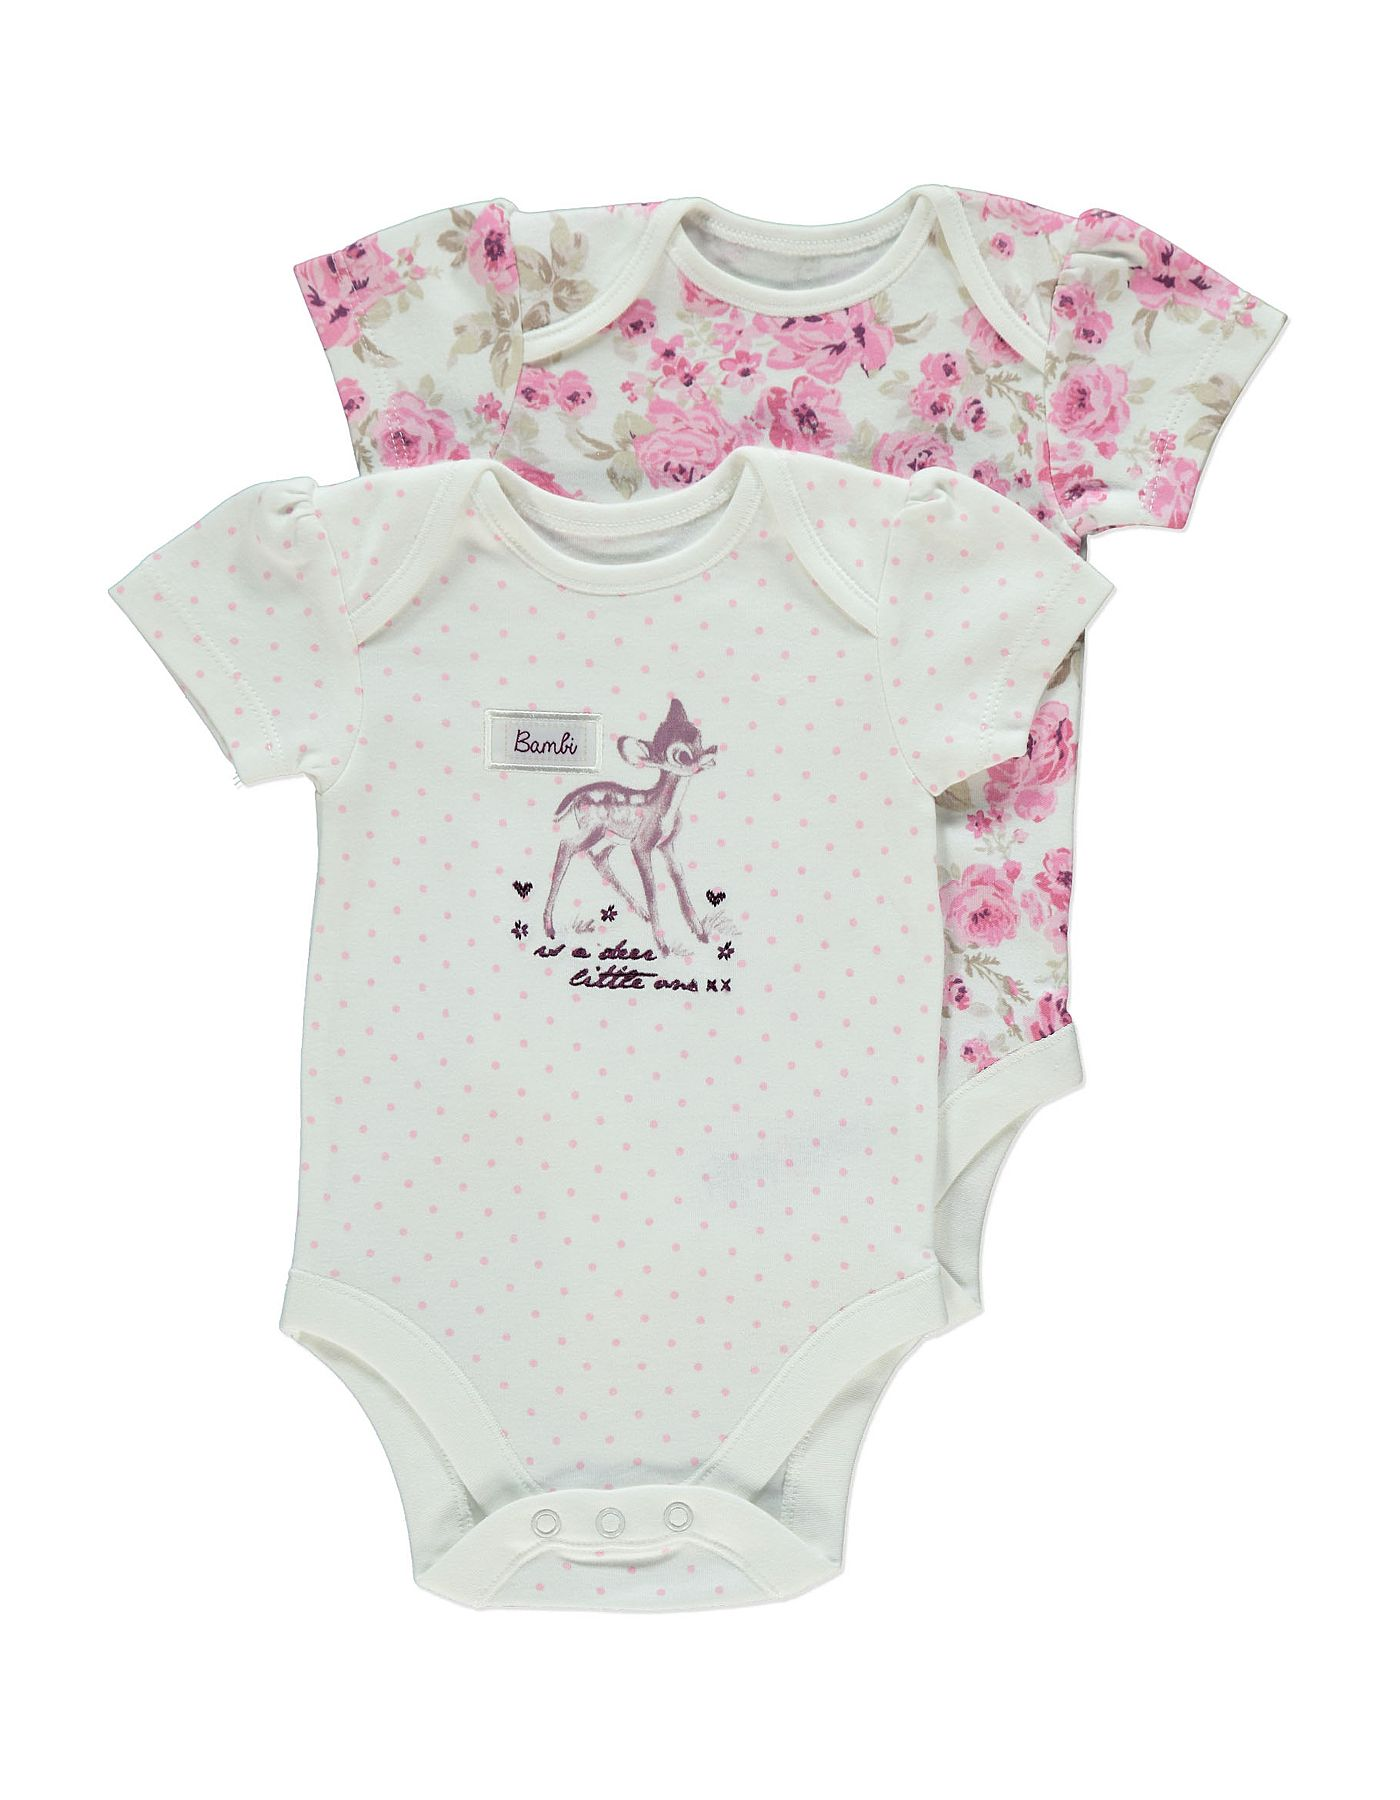 2a71a8ee51e2 2 Pack Bambi Bodysuits